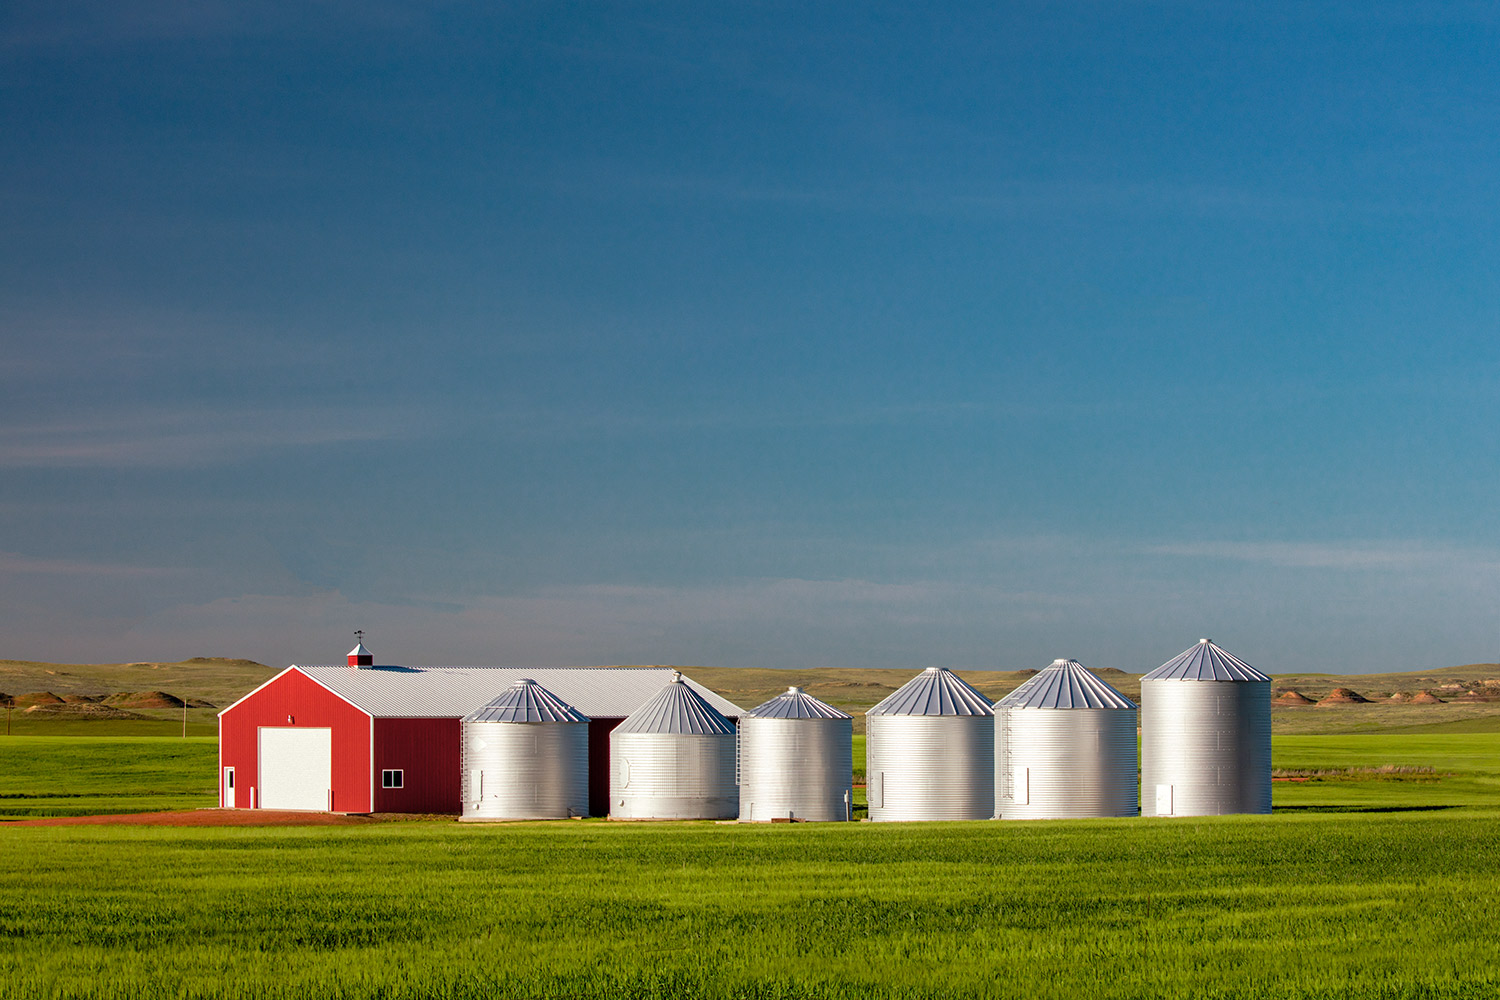 6 Bins and a Red Shed